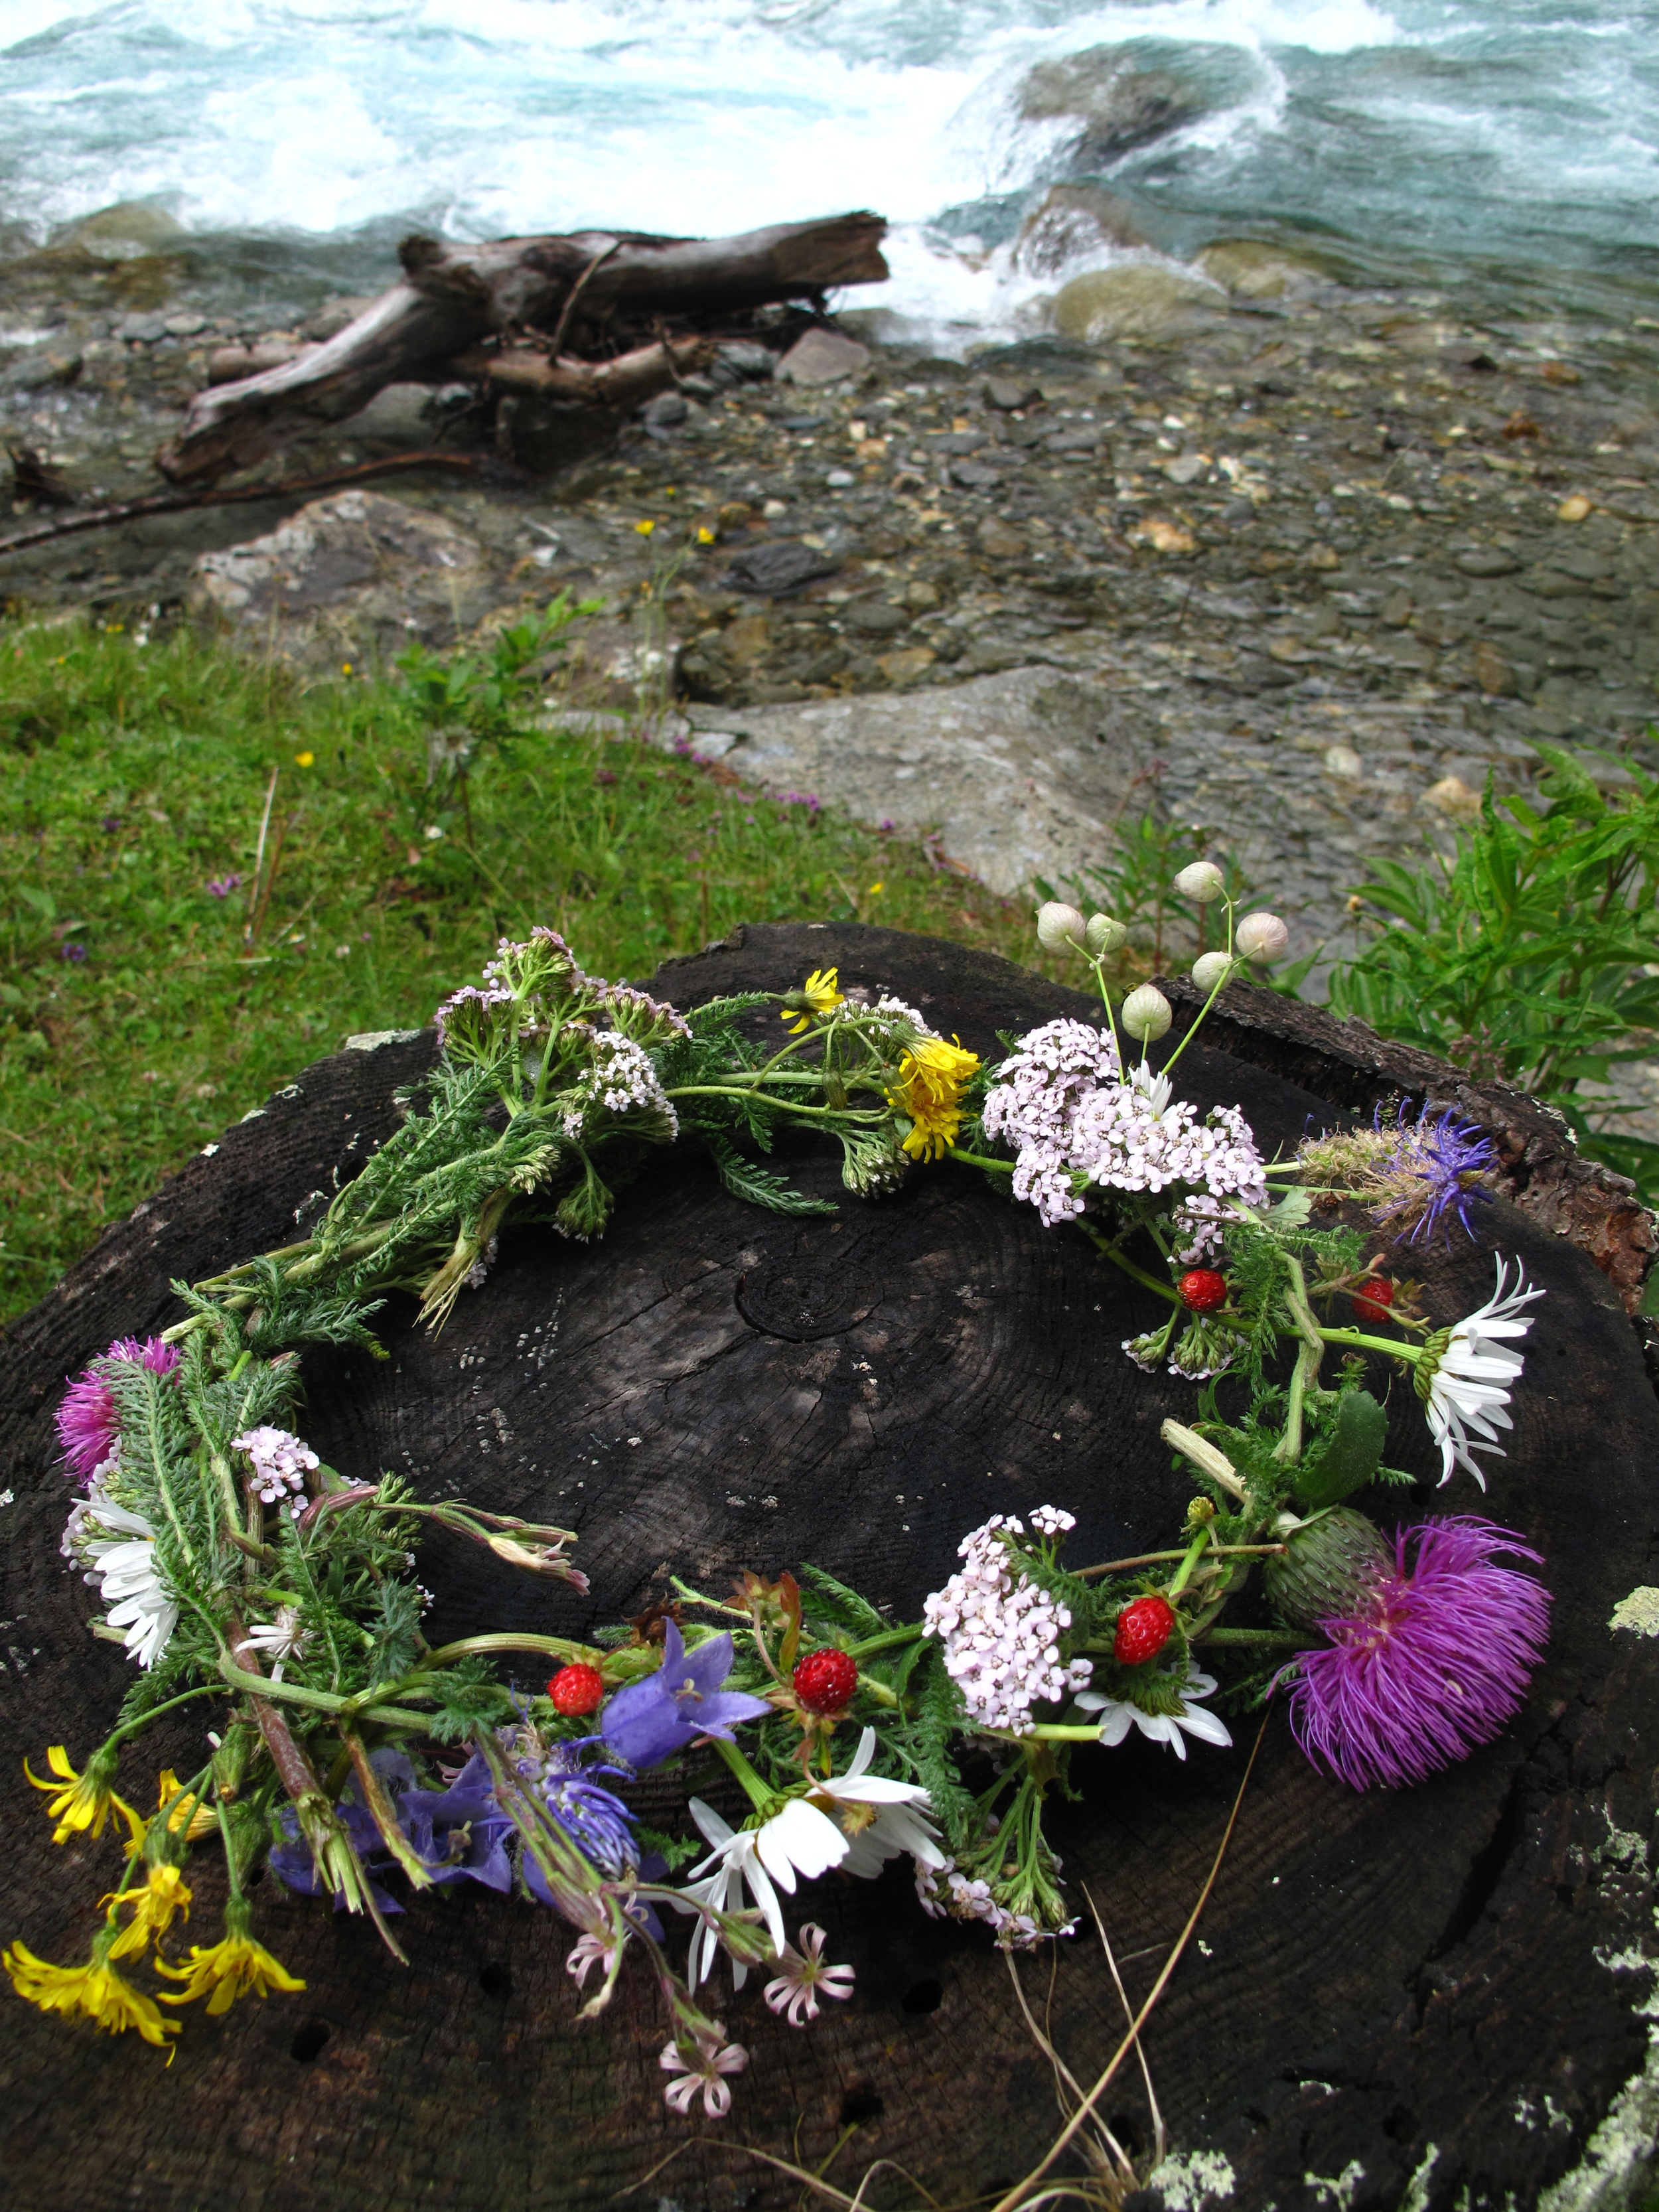 Flower crown of wildflowers and strawberries sitting on a burnt log